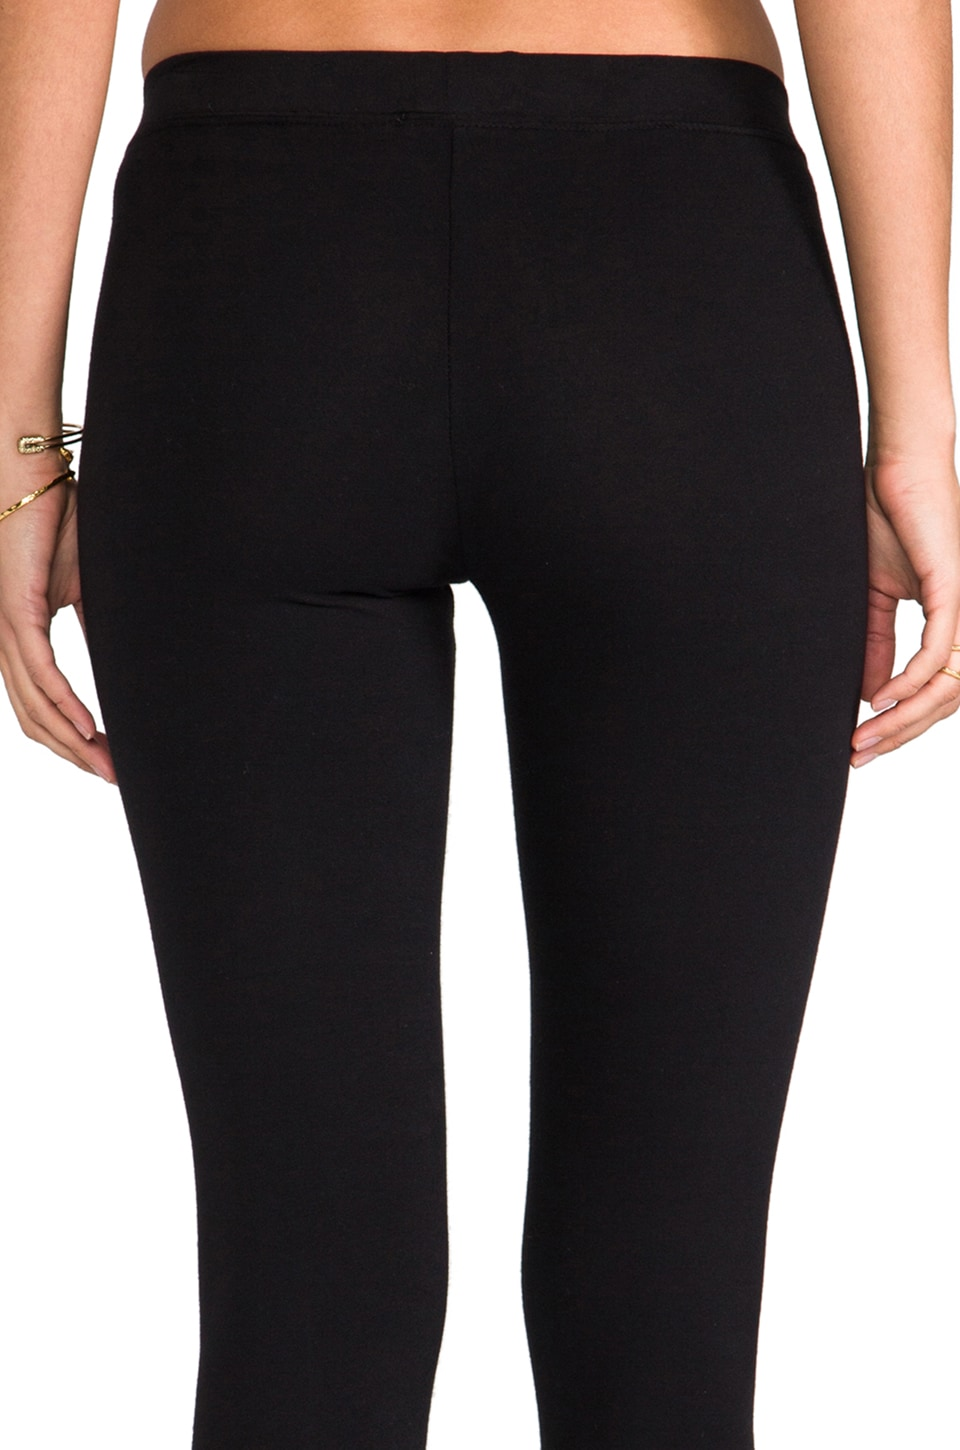 James Perse Long Legging in Black